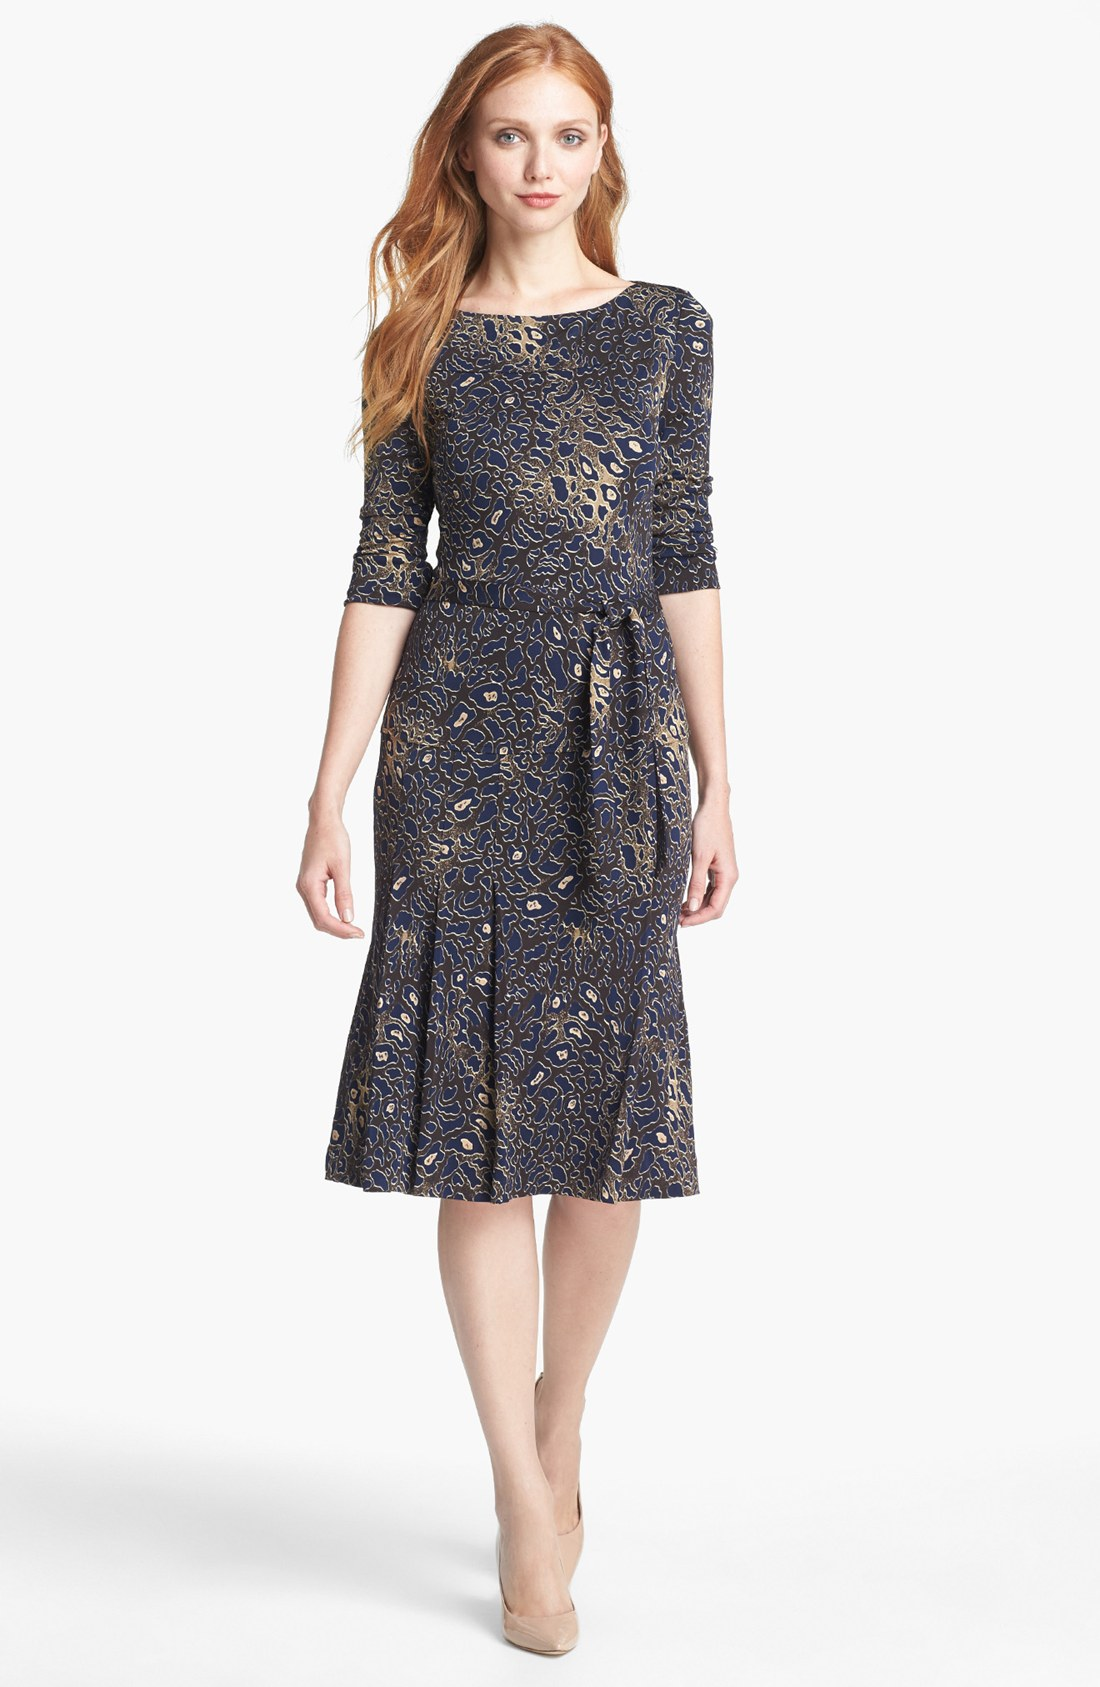 Lyst - Tory Burch Denise Print Pleated Dress In Brown